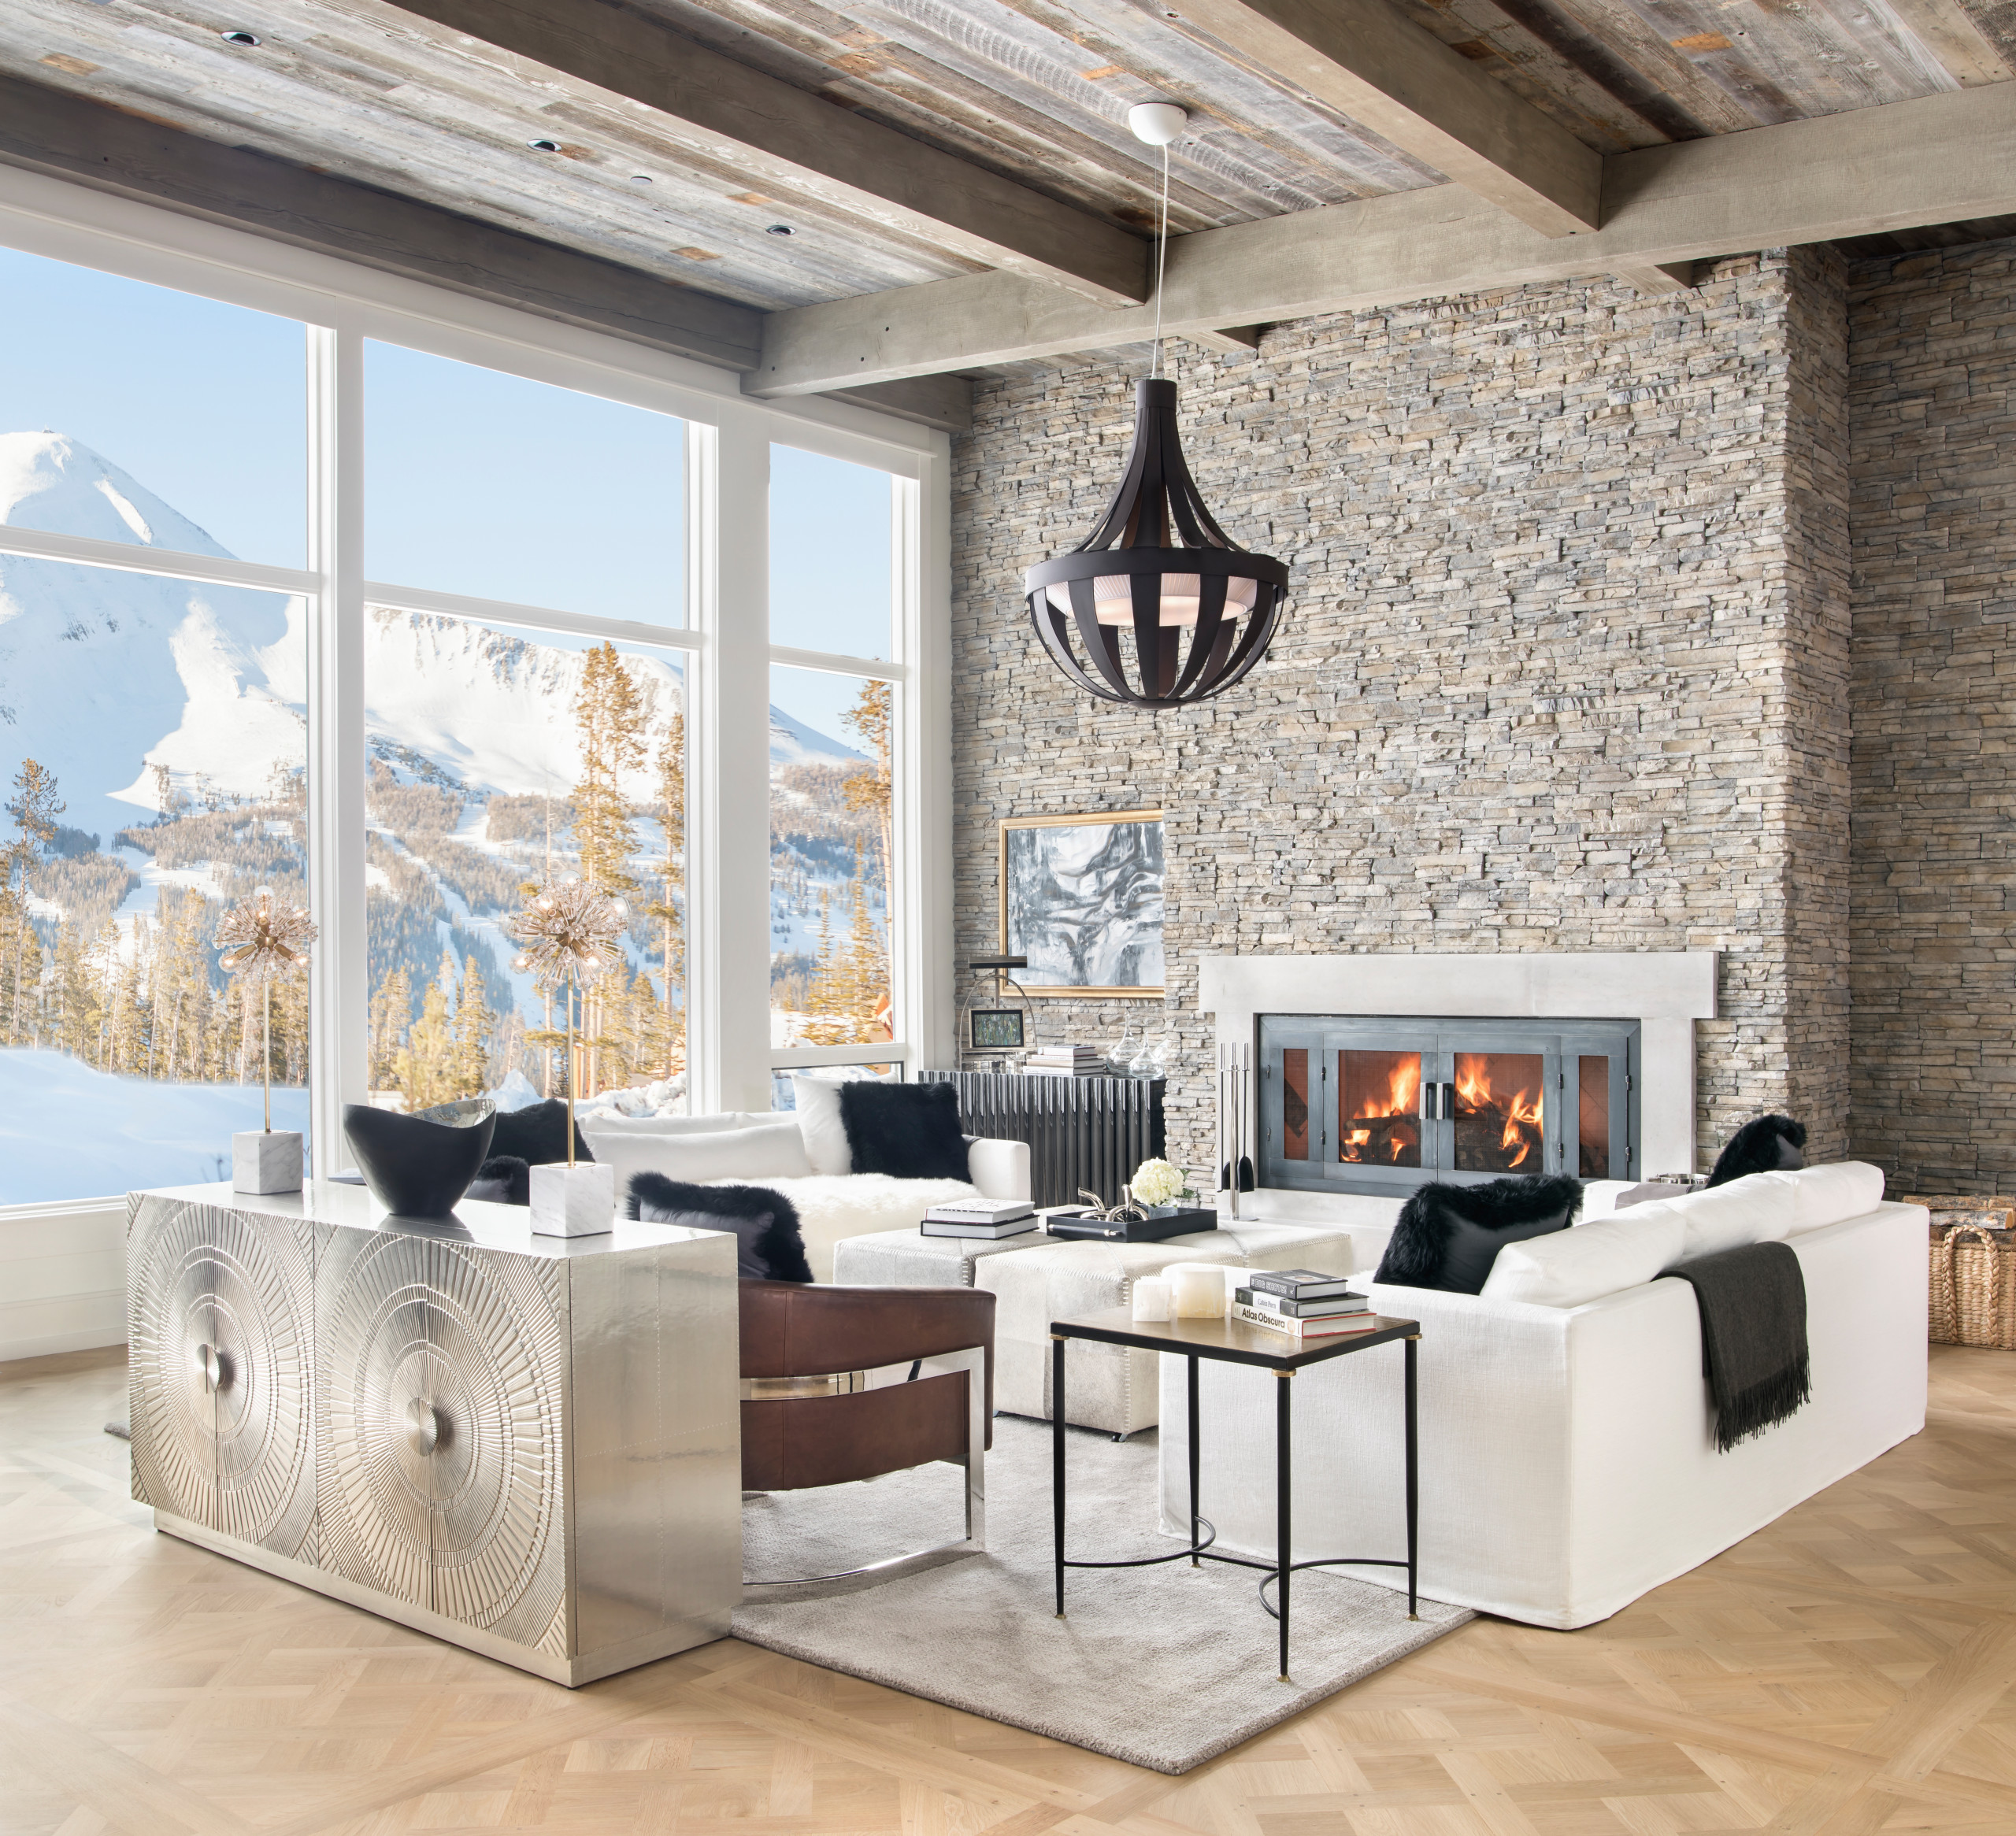 75 Beautiful Living Room With Gray Walls Pictures Ideas December 2020 Houzz